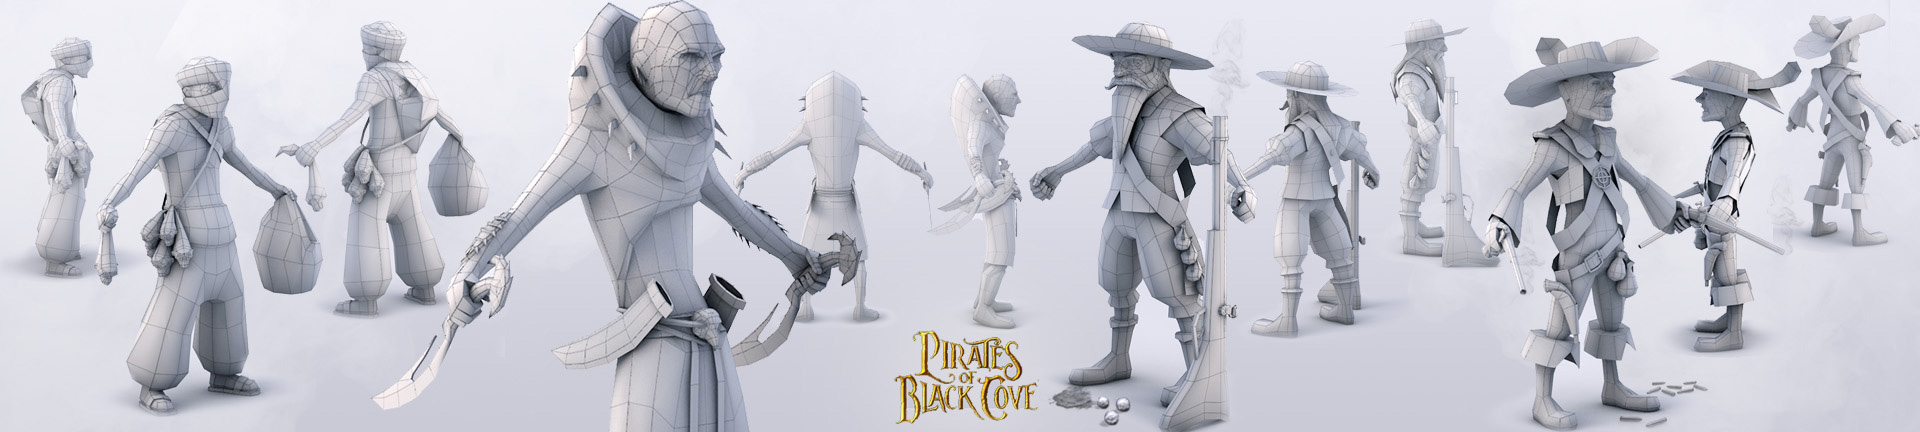 Pirates Of Black Cove 3D Modeling